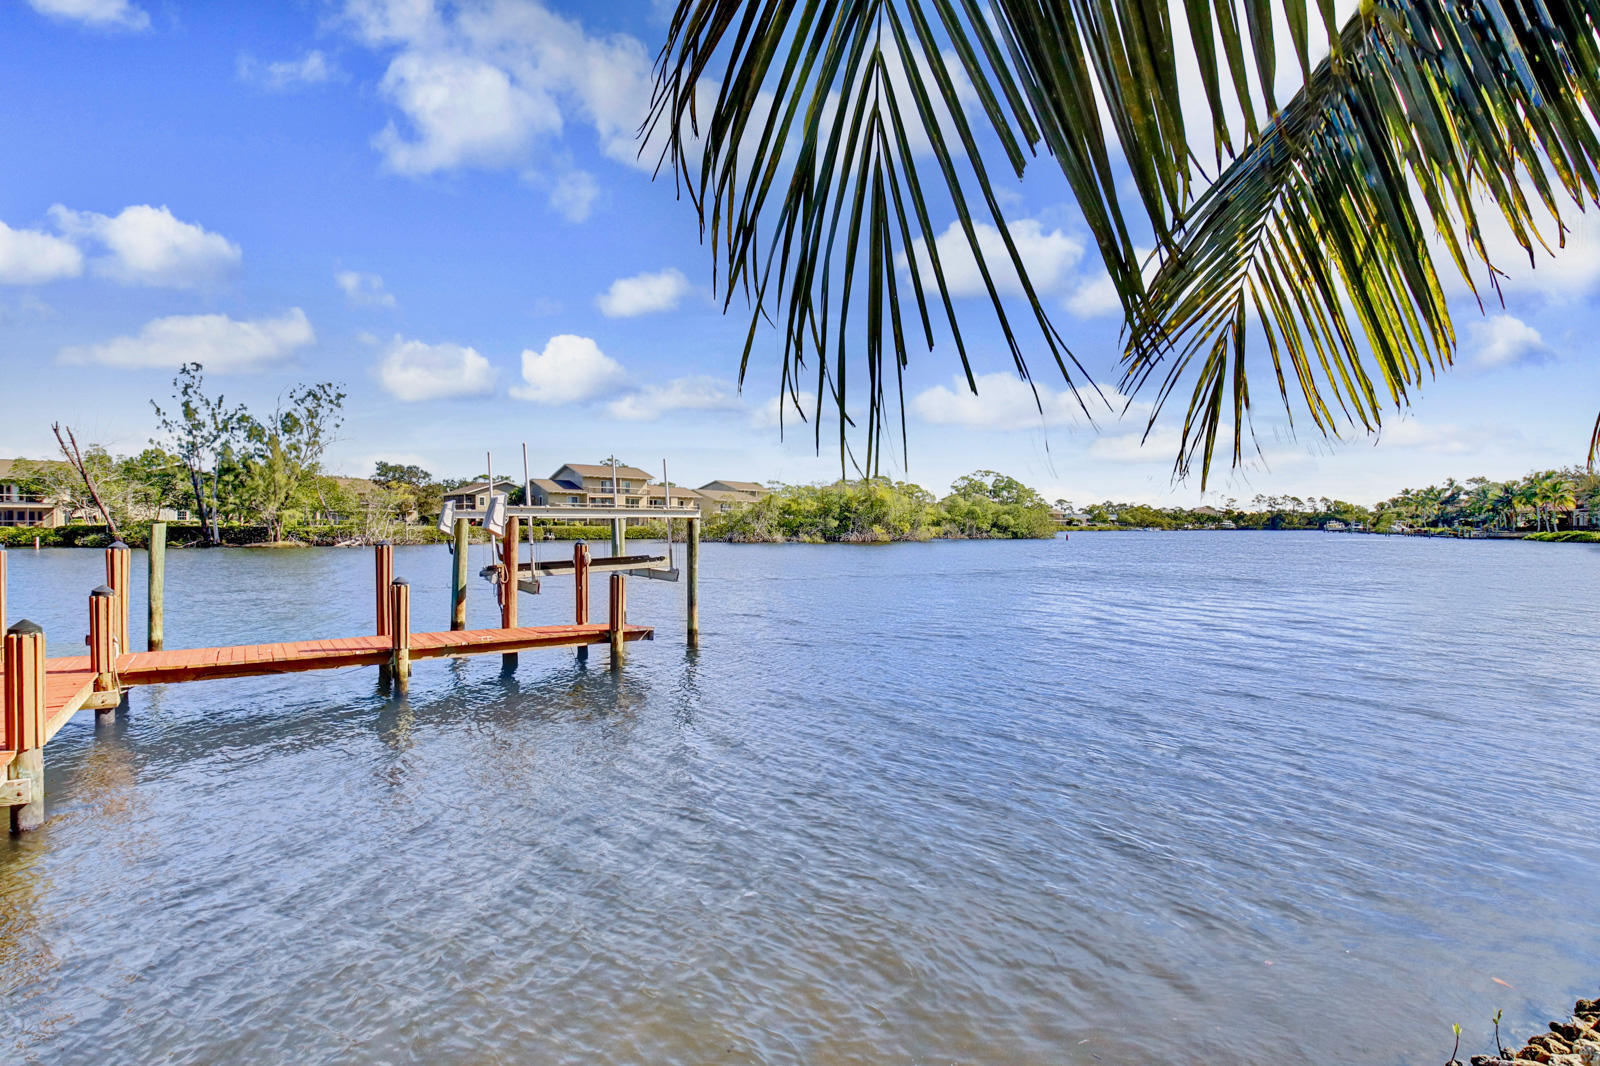 JUPITER RIVER ESTATES 3RD ADDN NWLY PORTION OF LOT 65 & SELY PORTION OF LOT 66, ''ALL AS DESC'D IN OR 1132/1301 ''AKA P-